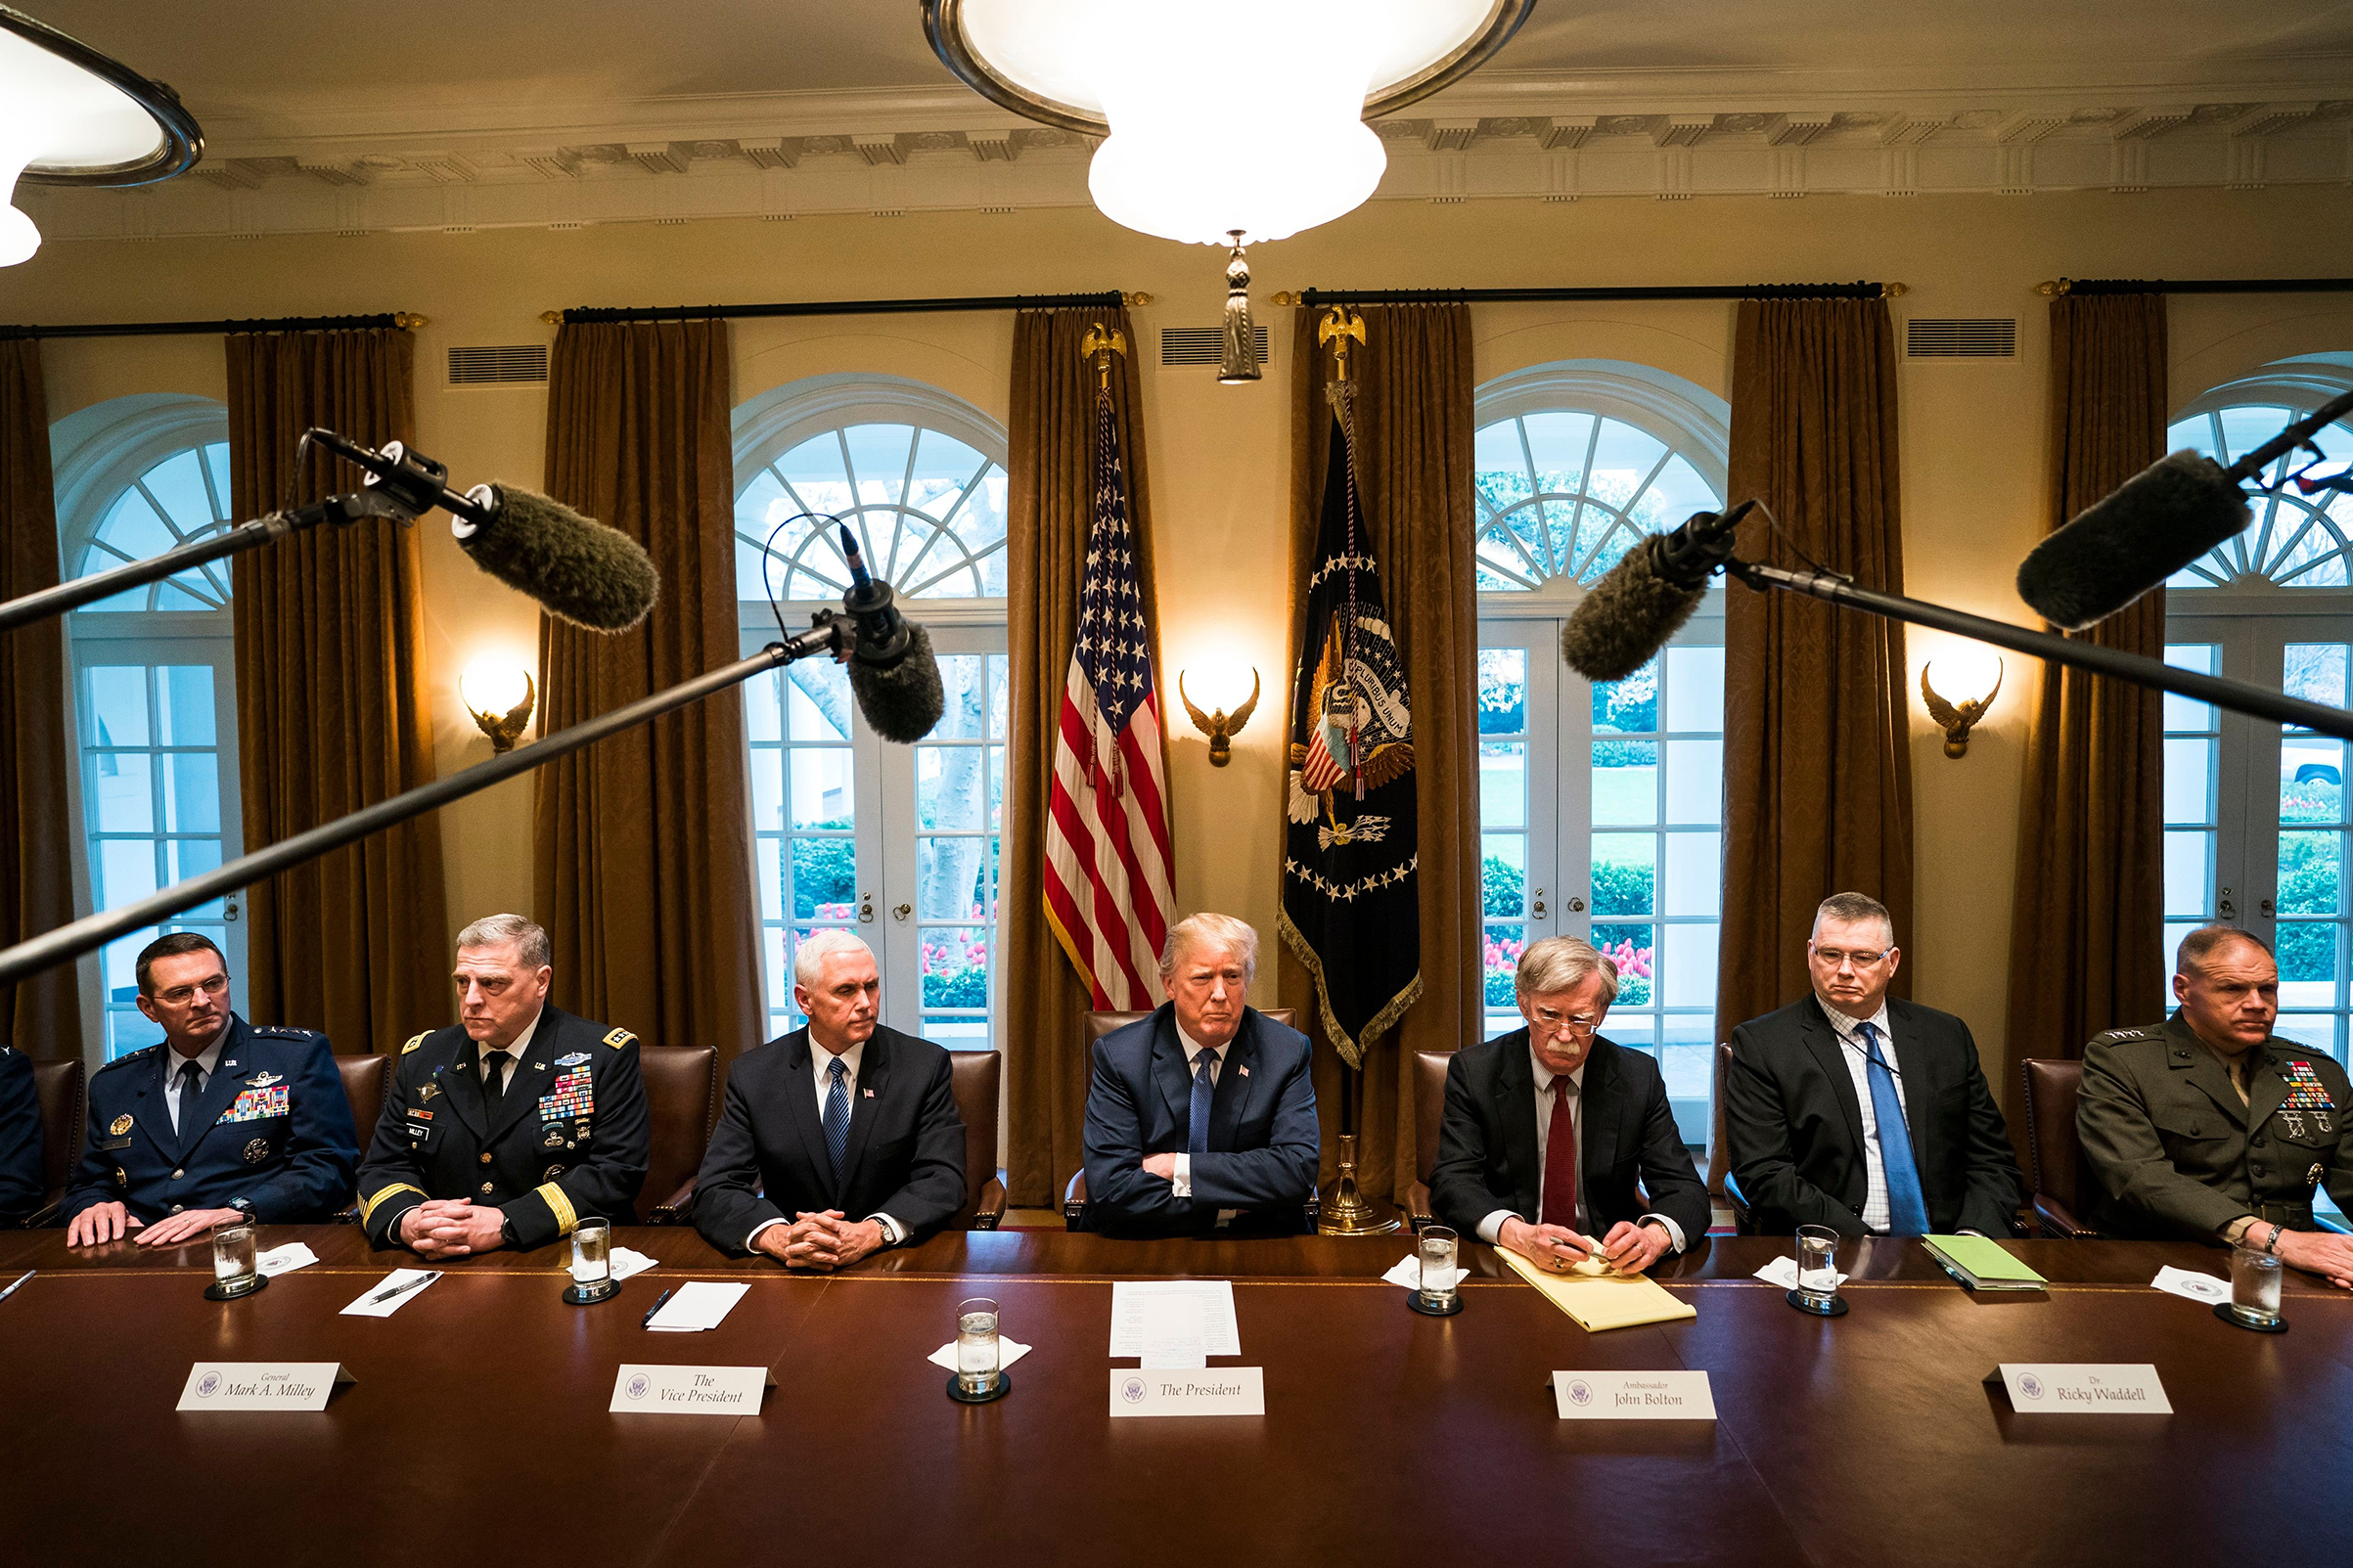 Trump S Actions Make Many Military Leaders Uncomfortable Time